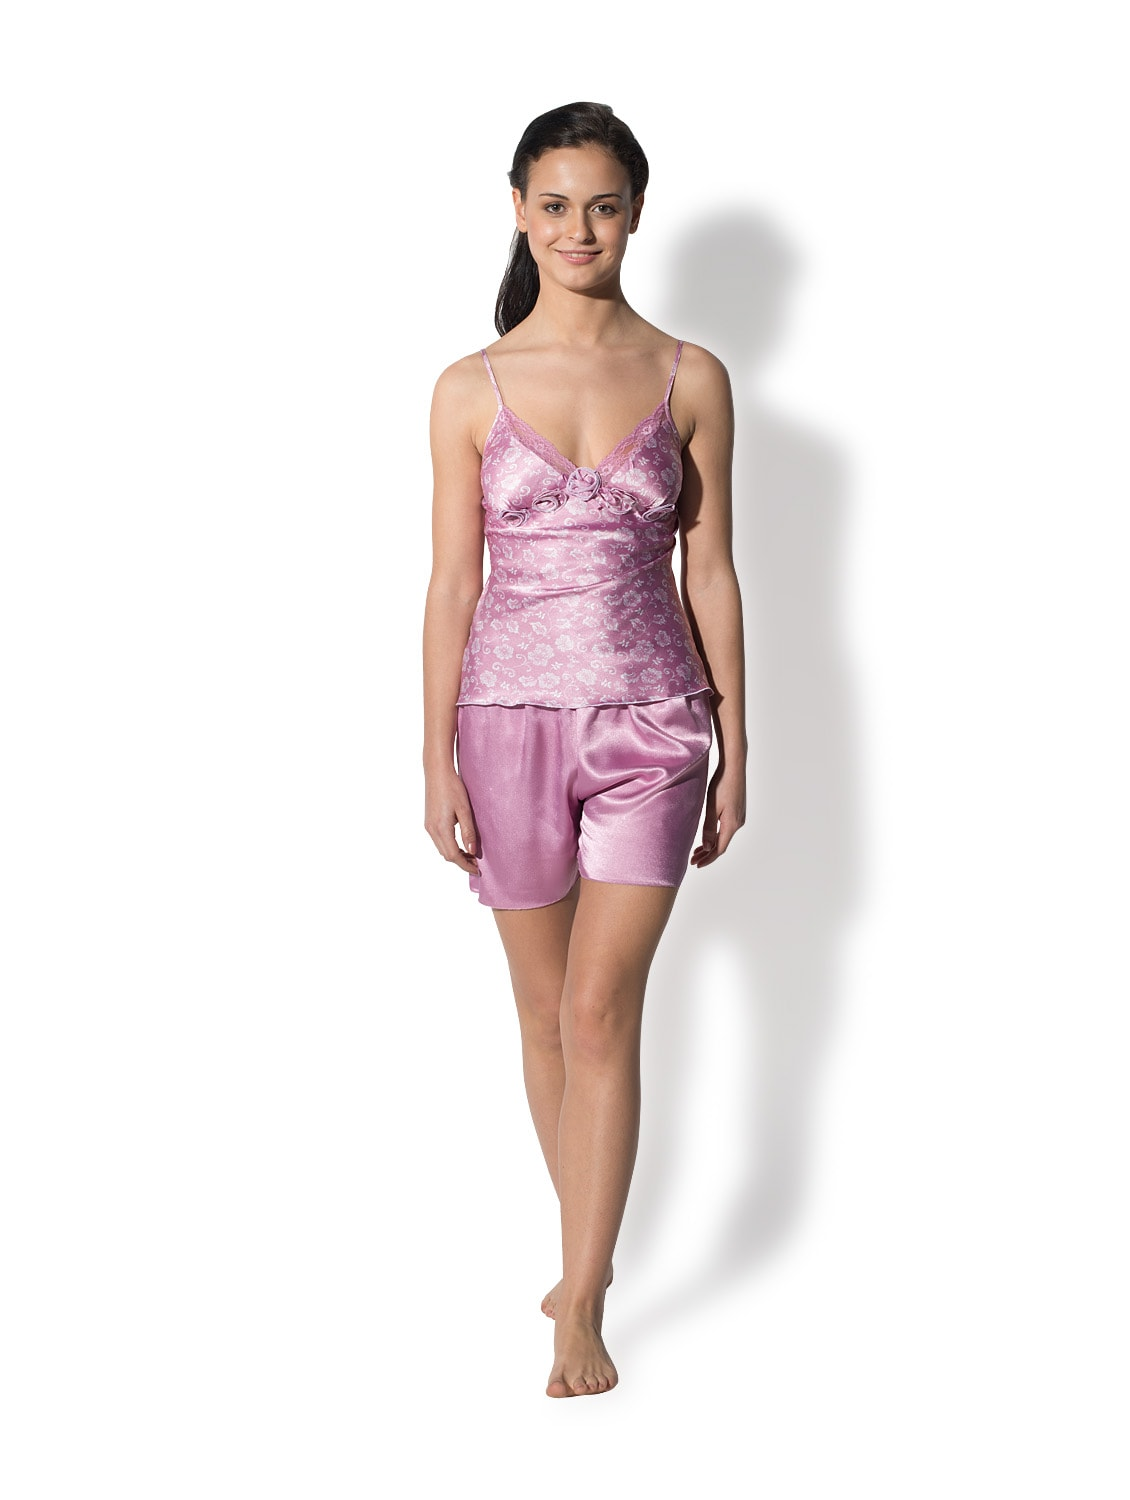 0cfdb627a8 Buy Cutesy Satin Night Suit by Privatelives - Online shopping for Nightwear  in India